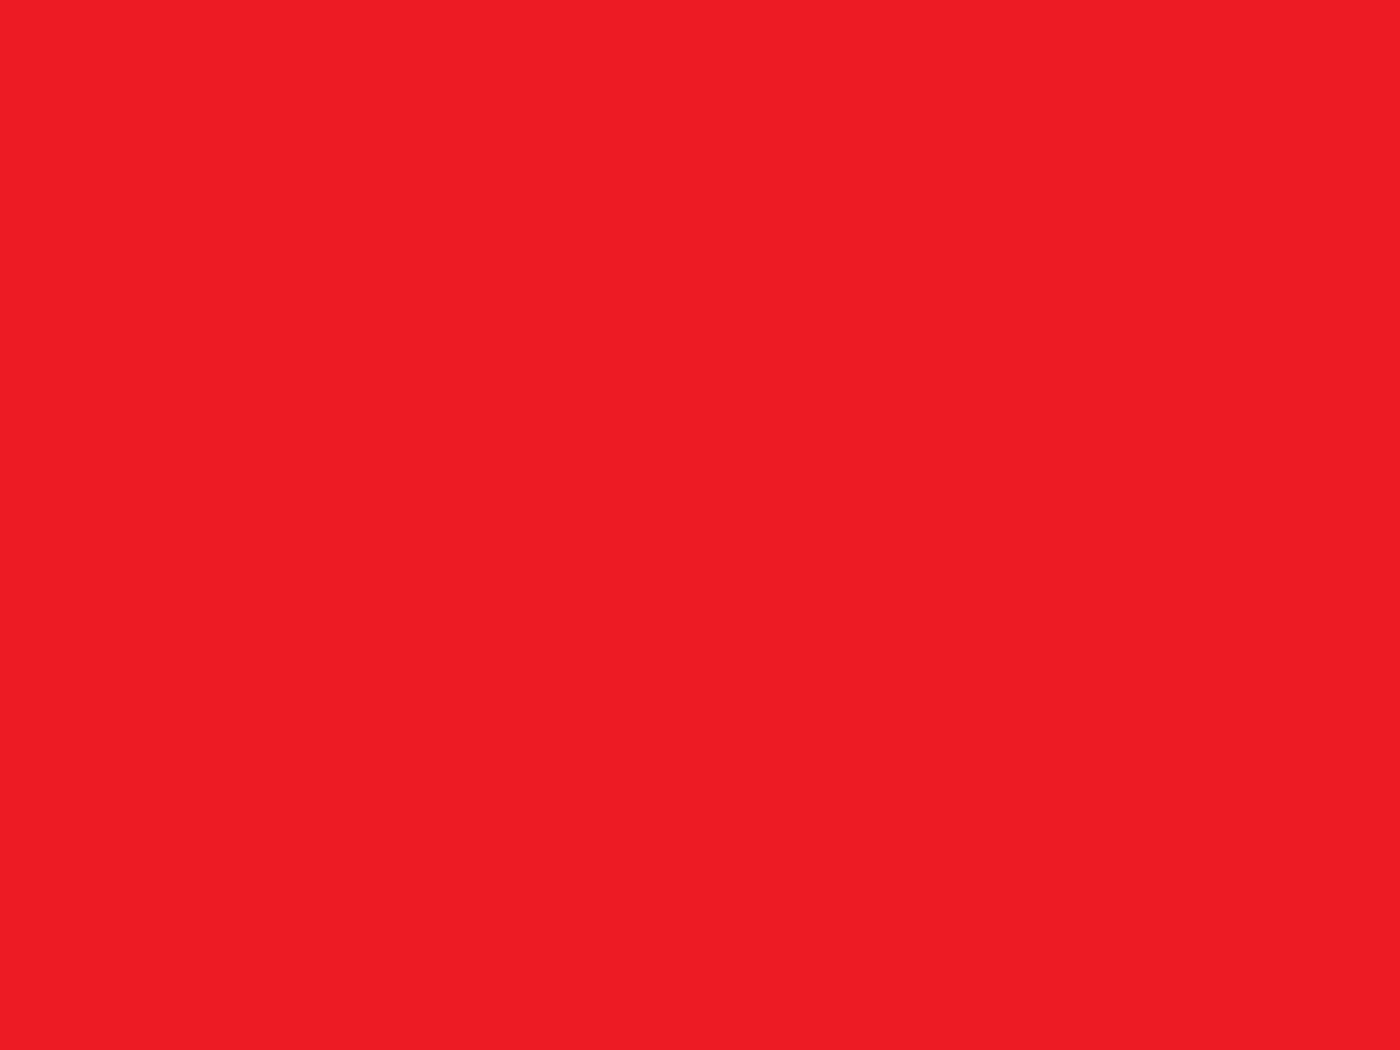 1400x1050 Red Pigment Solid Color Background